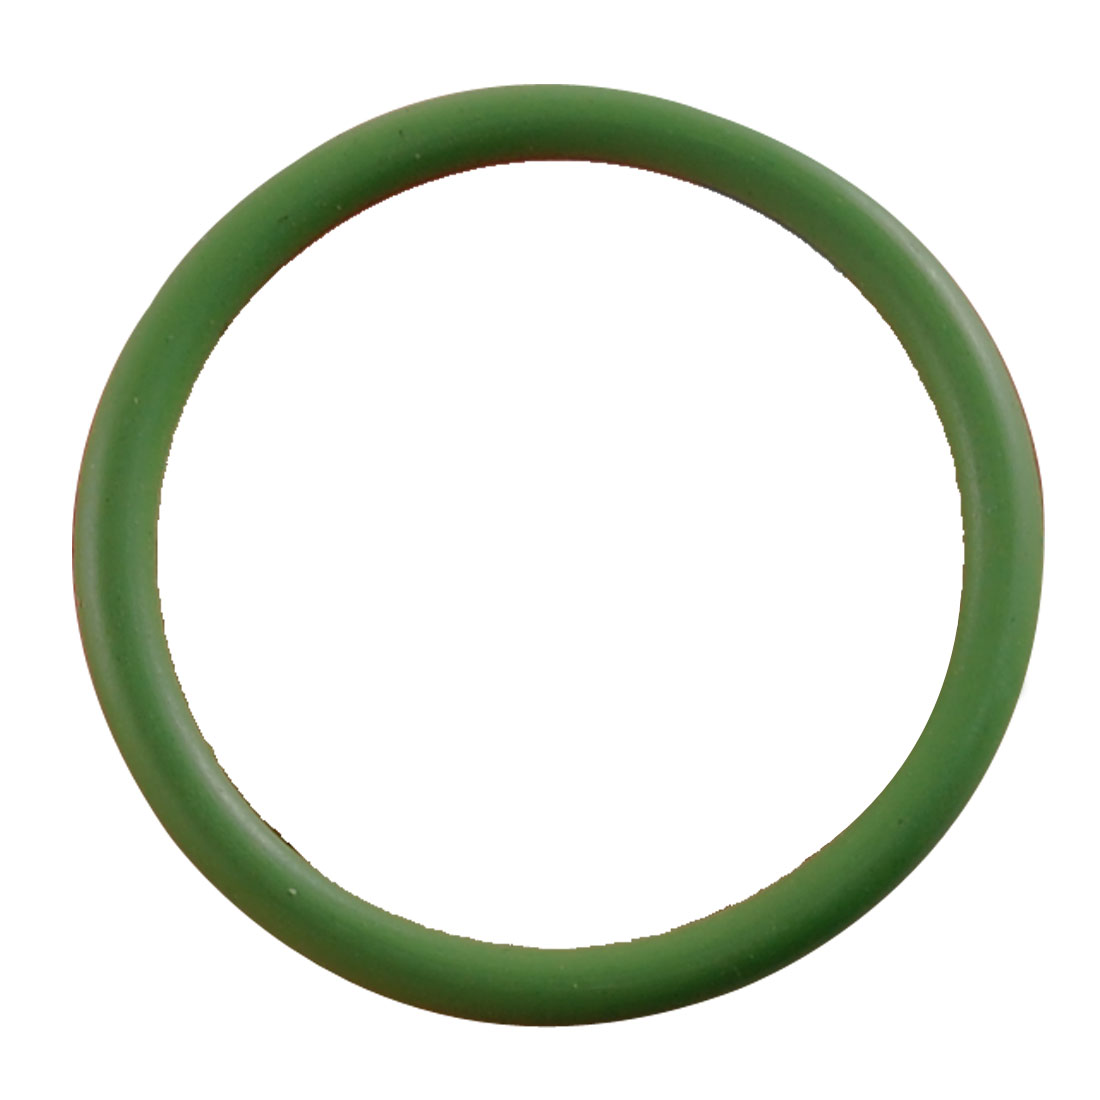 25mm OD 2mm Thickness Green Fluorine Rubber O Ring Oil Seal Gasket